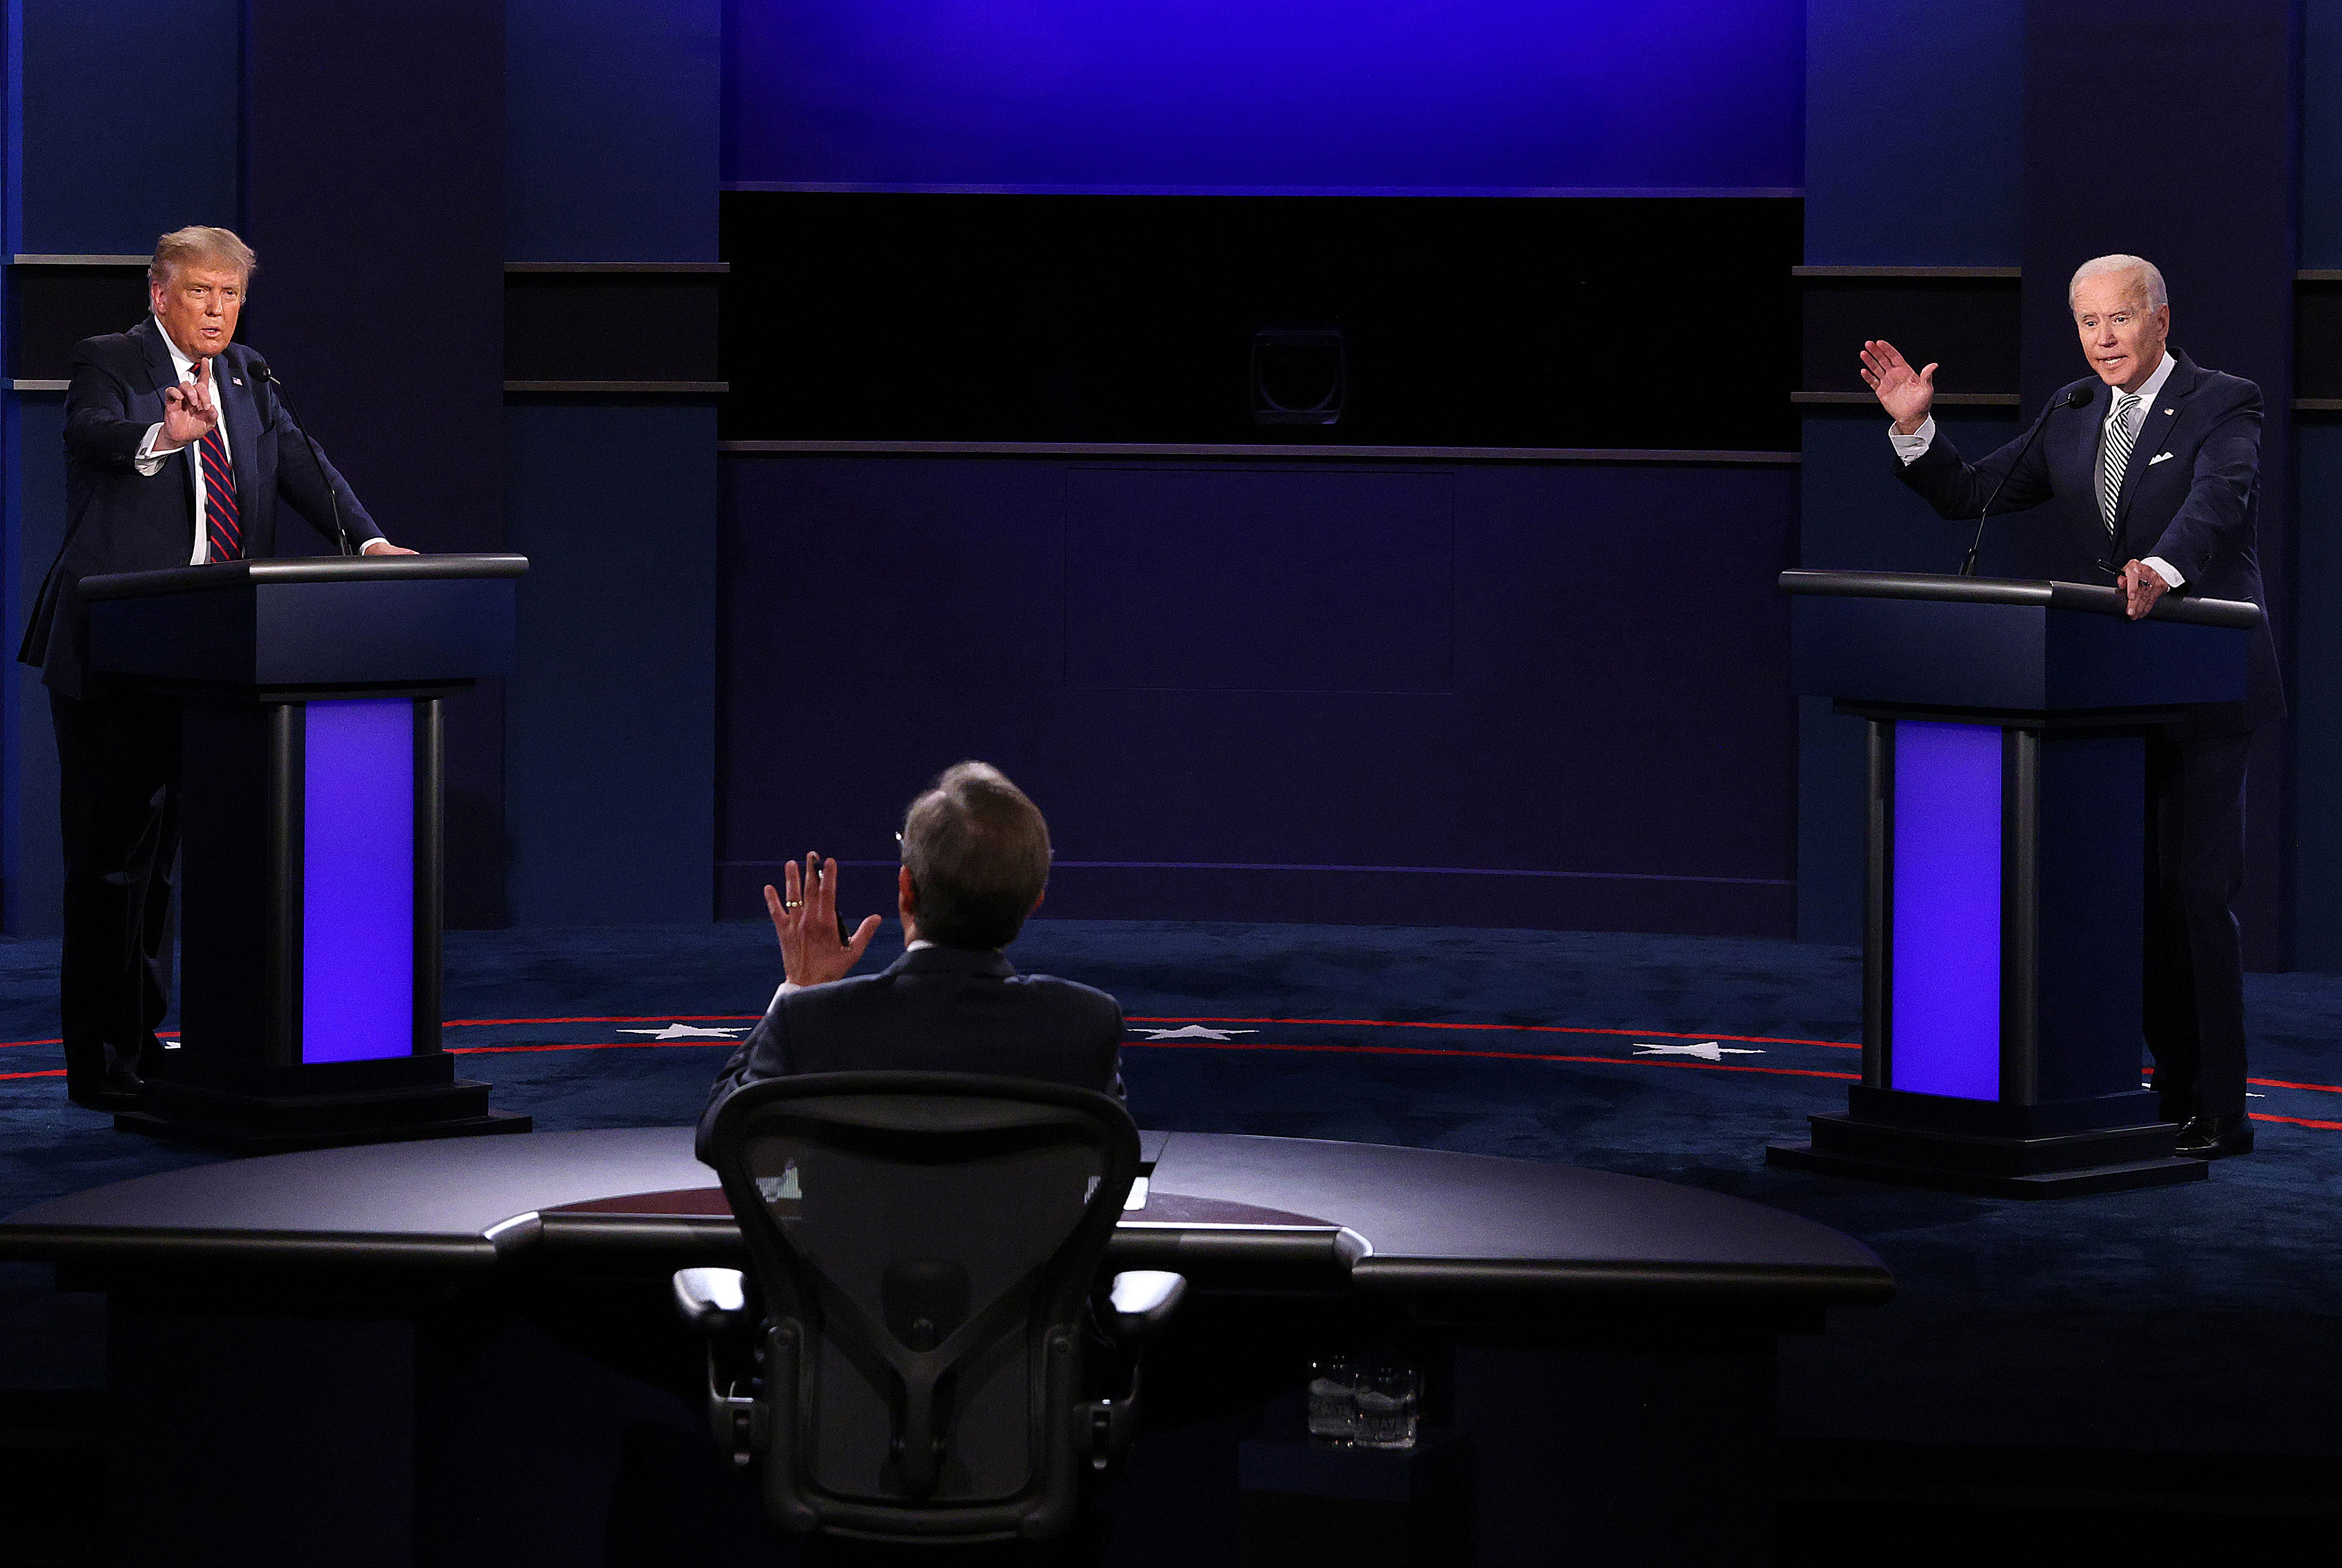 President Donald Trump, left, and Democratic nominee Joe Biden take part in the first presidential debate on September 29 in Cleveland. At center is moderator Chris Wallace.